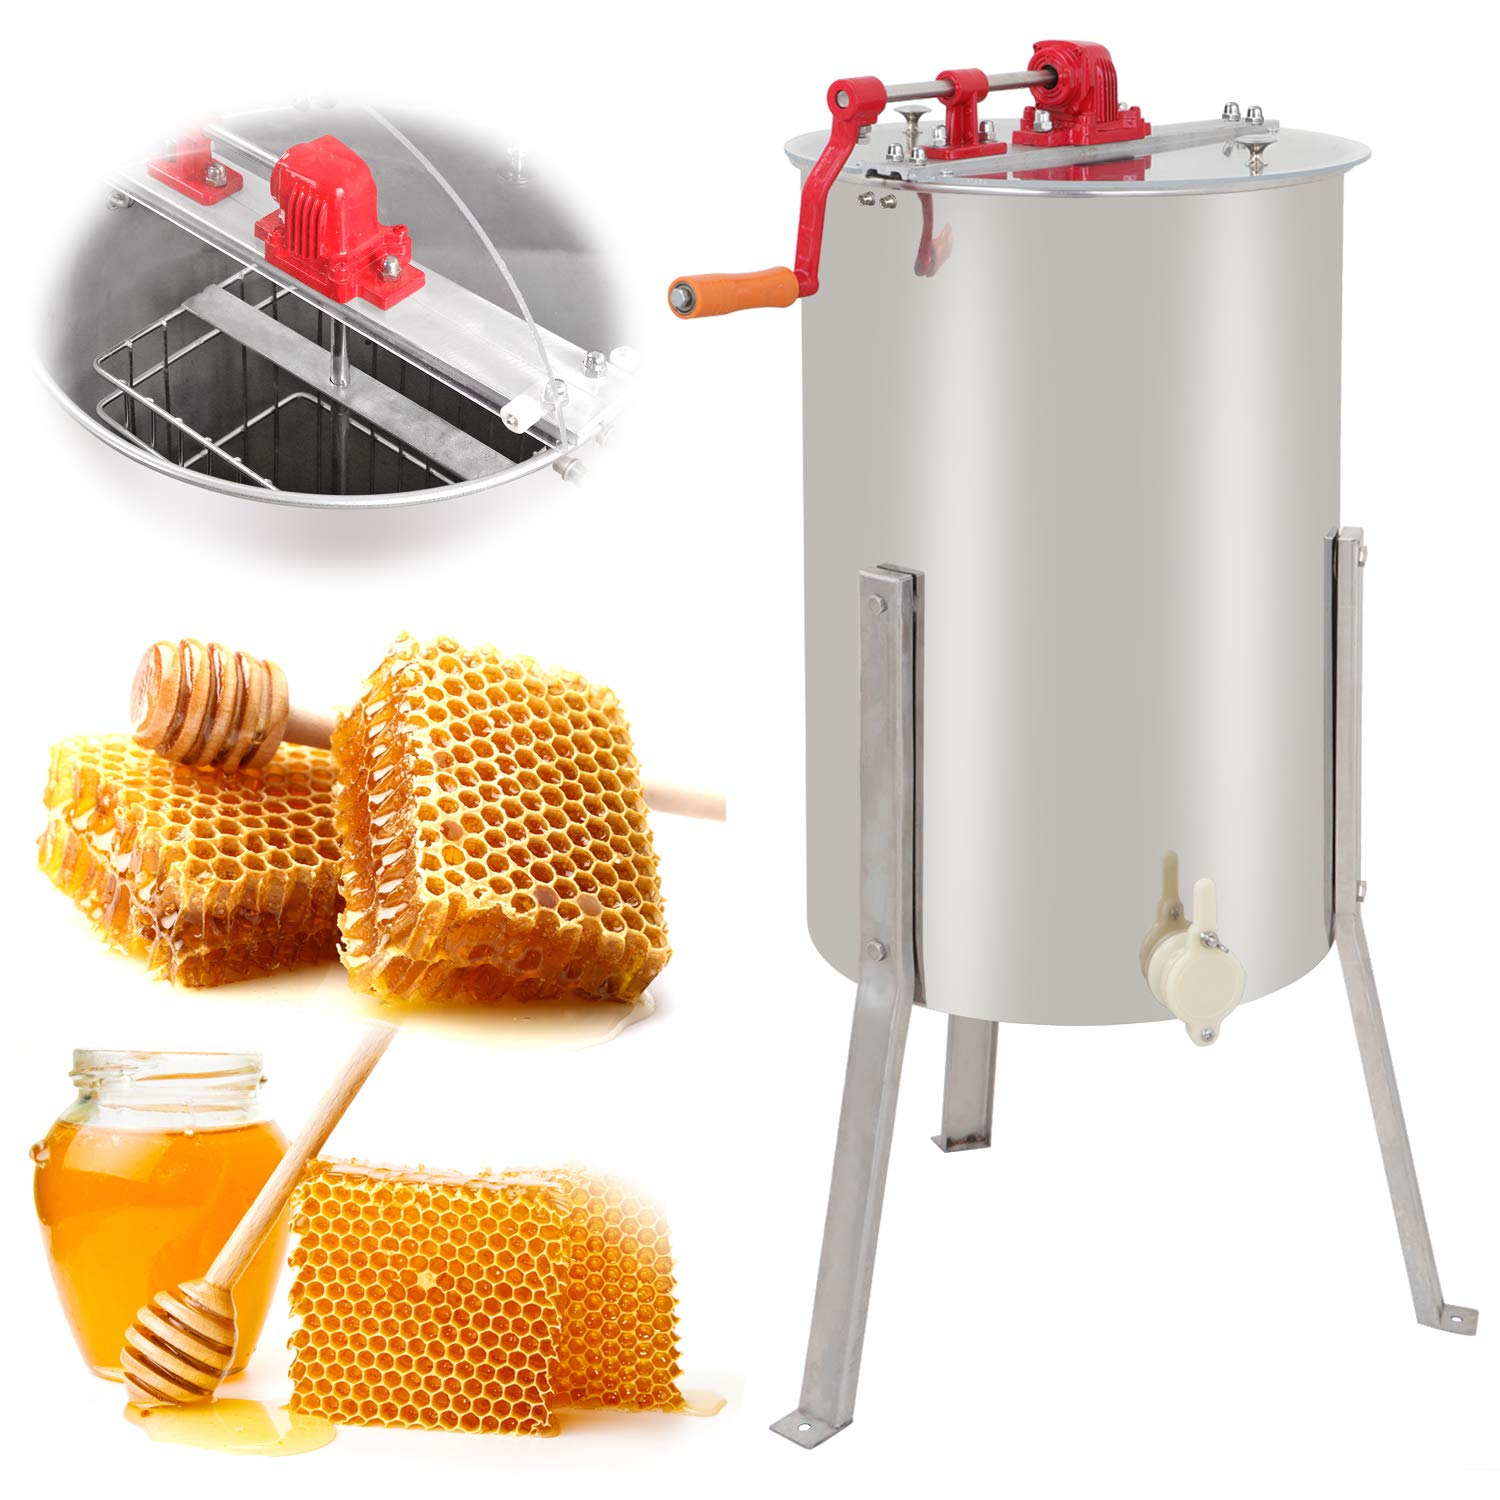 manual honey extracting machine kiwimana